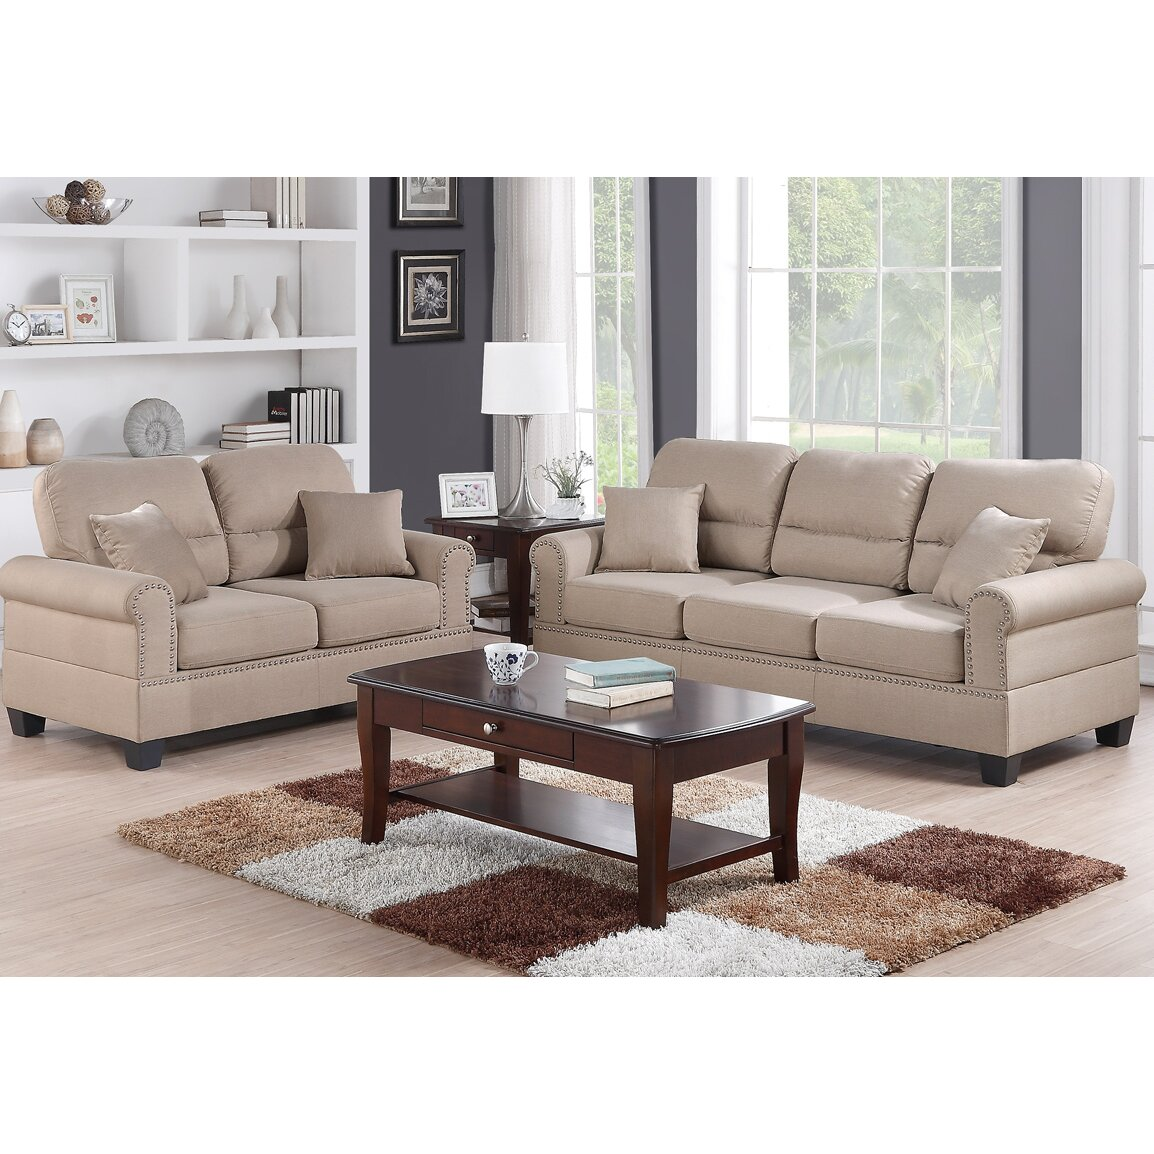 Poundex bobkona shelton sofa and loveseat set reviews for Family room furniture